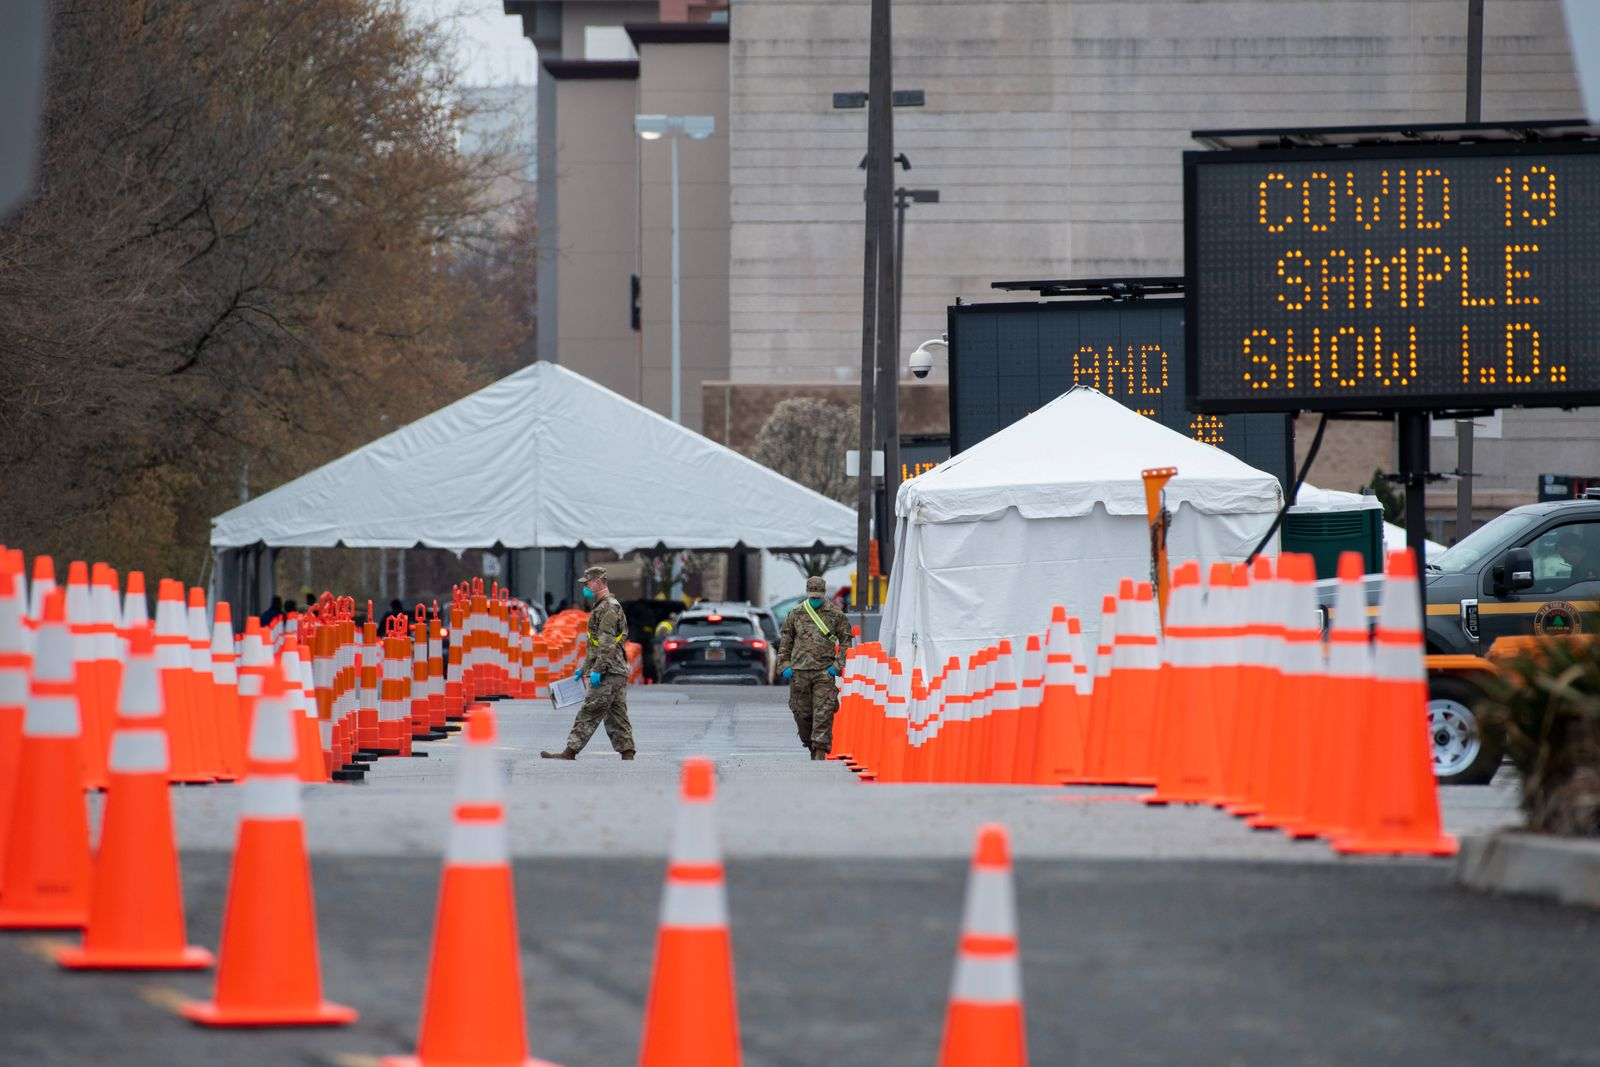 A testing site for the coronavirus is readied in the Bronx, on Monday, March 30, 2020. (Gregg Vigliotti/The New York Times)